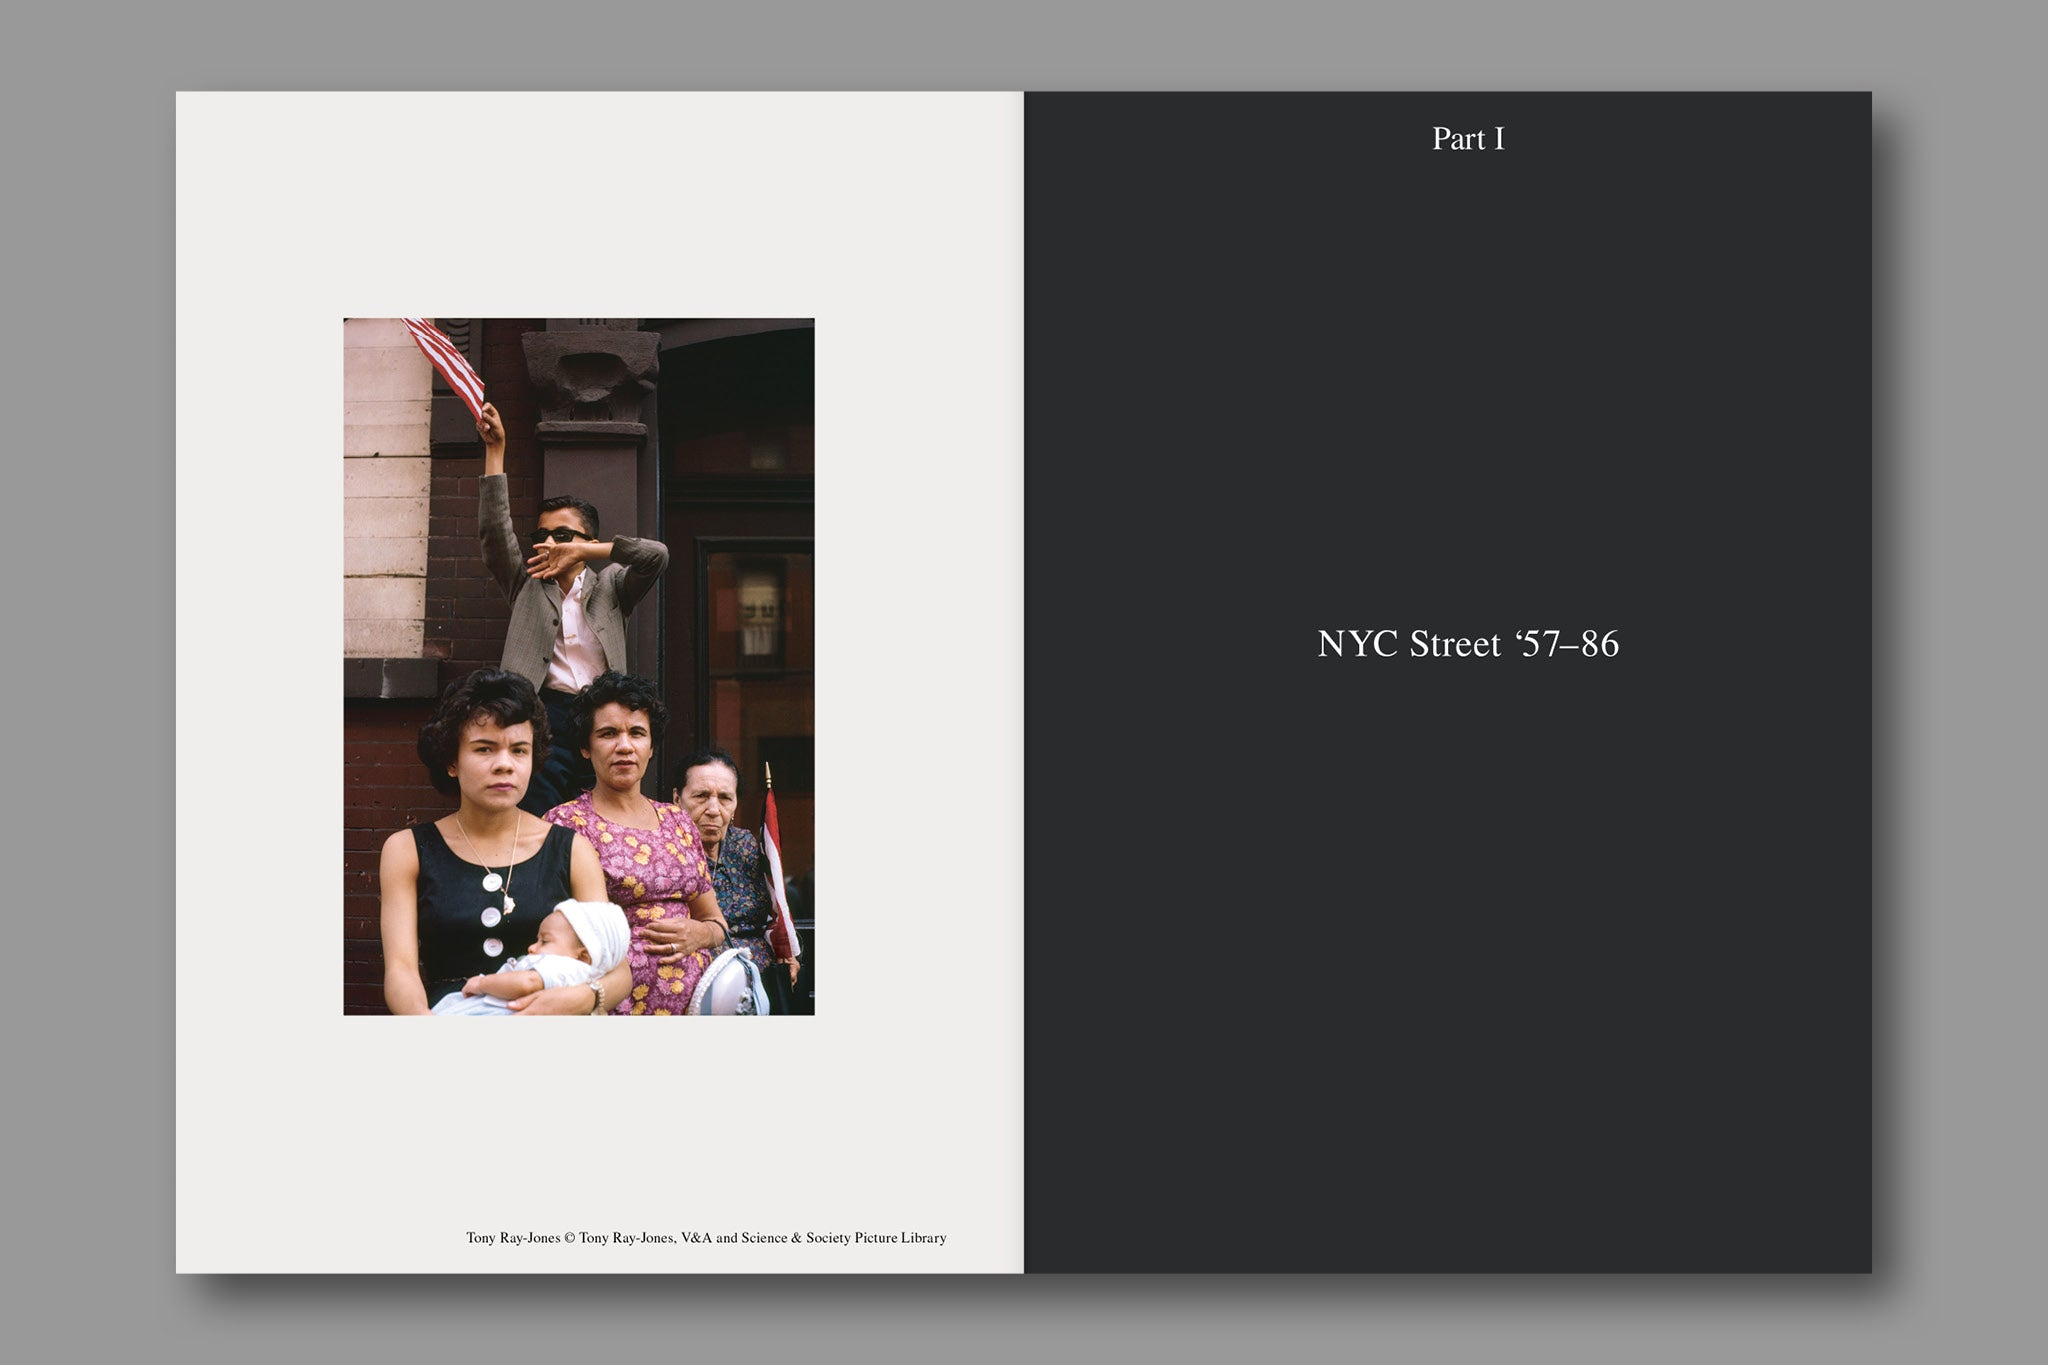 Issue 204: NYC Streets